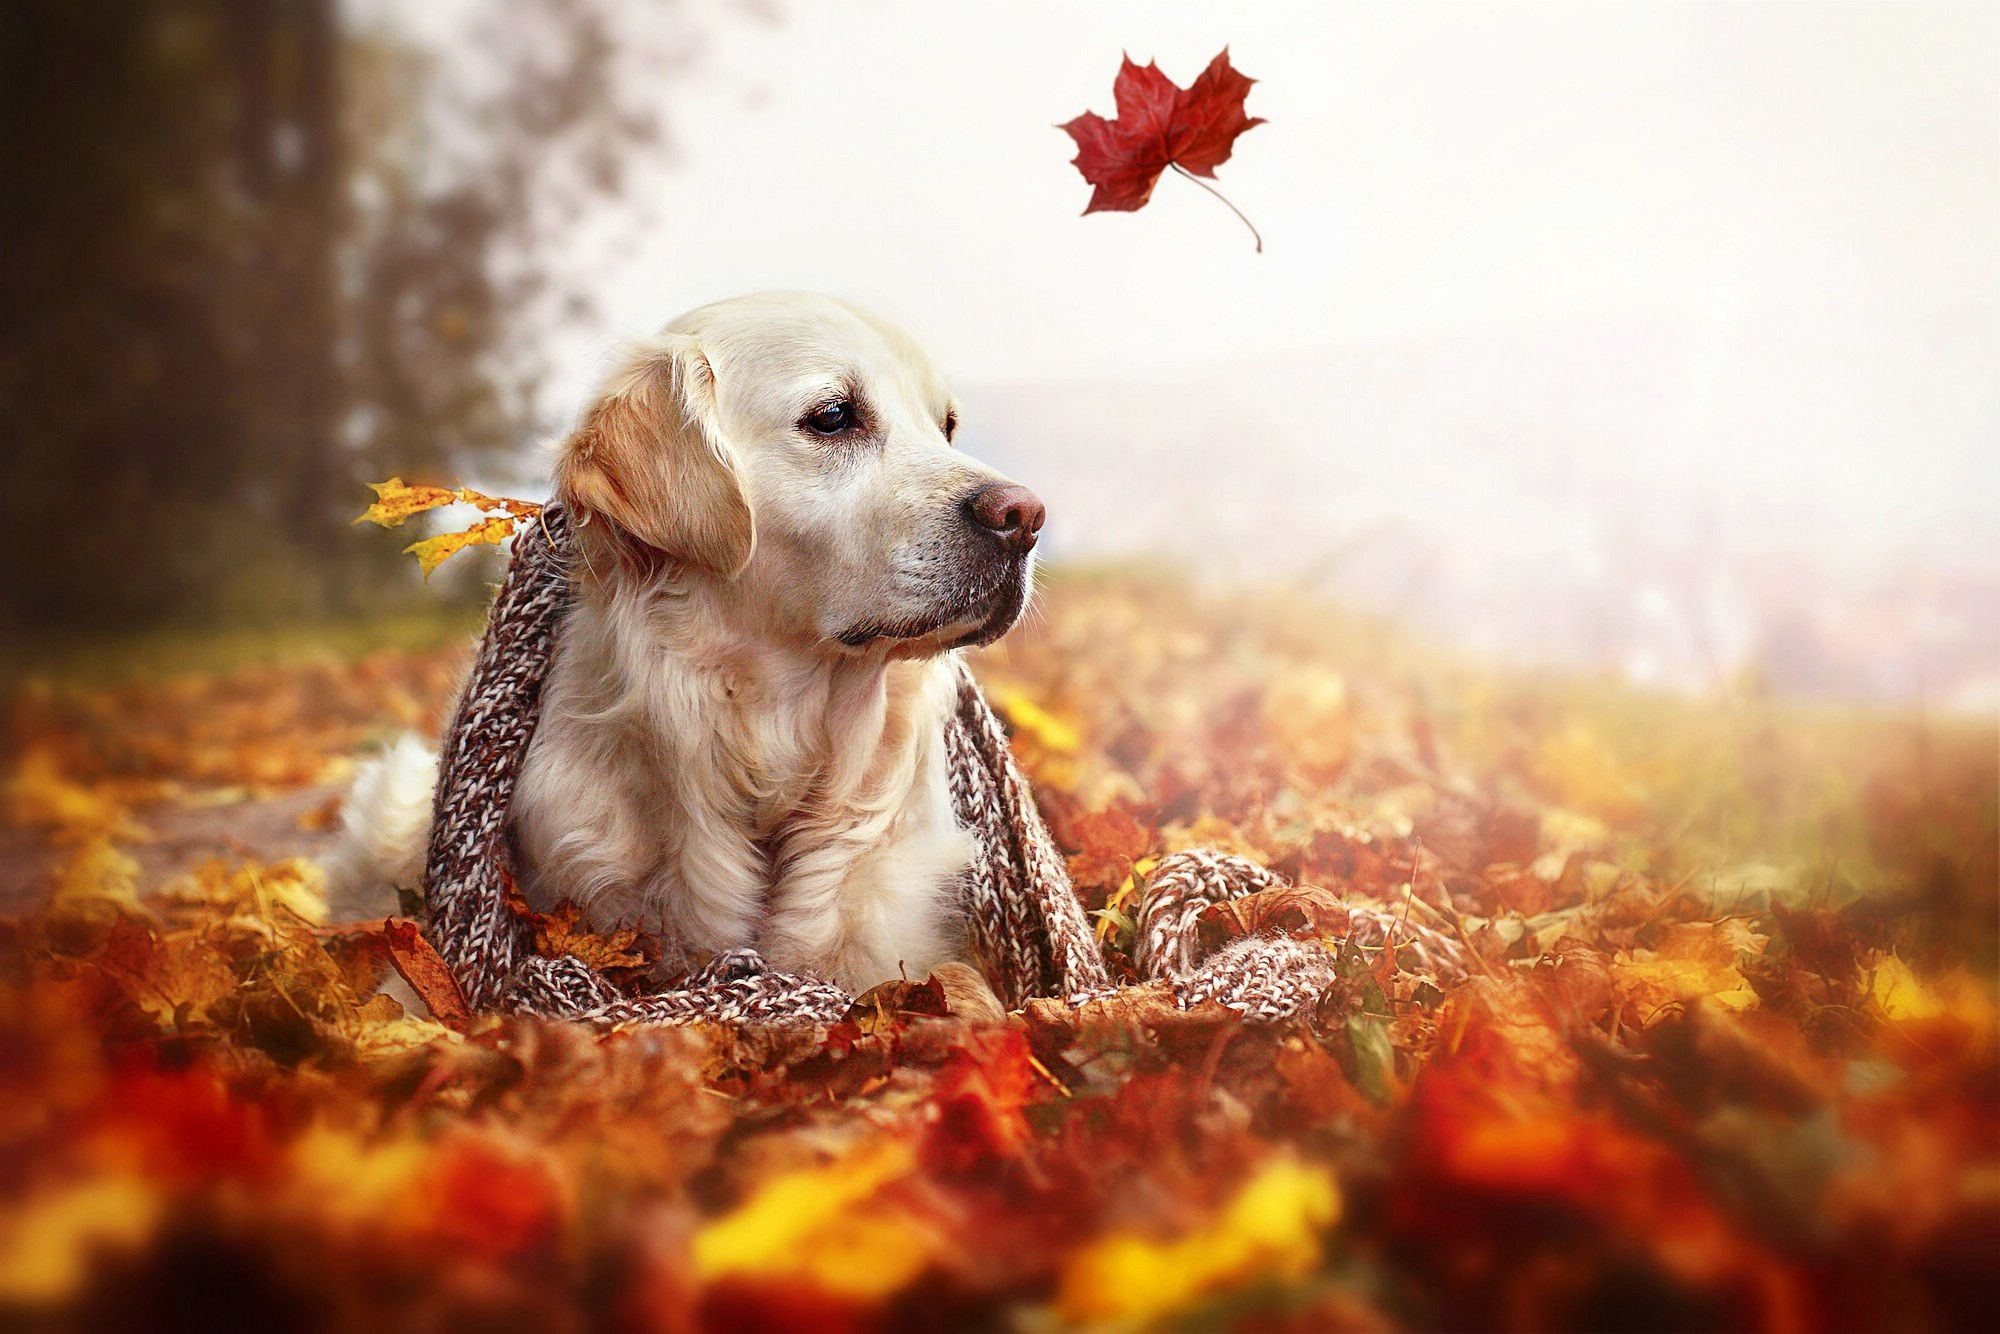 One Autumn Leaf In The Wind And A Beautiful Dog Relax Time Animal Wallpapers Hd Wallpaper Download For Dogs Golden Retriever Golden Retriever Beautiful Dogs